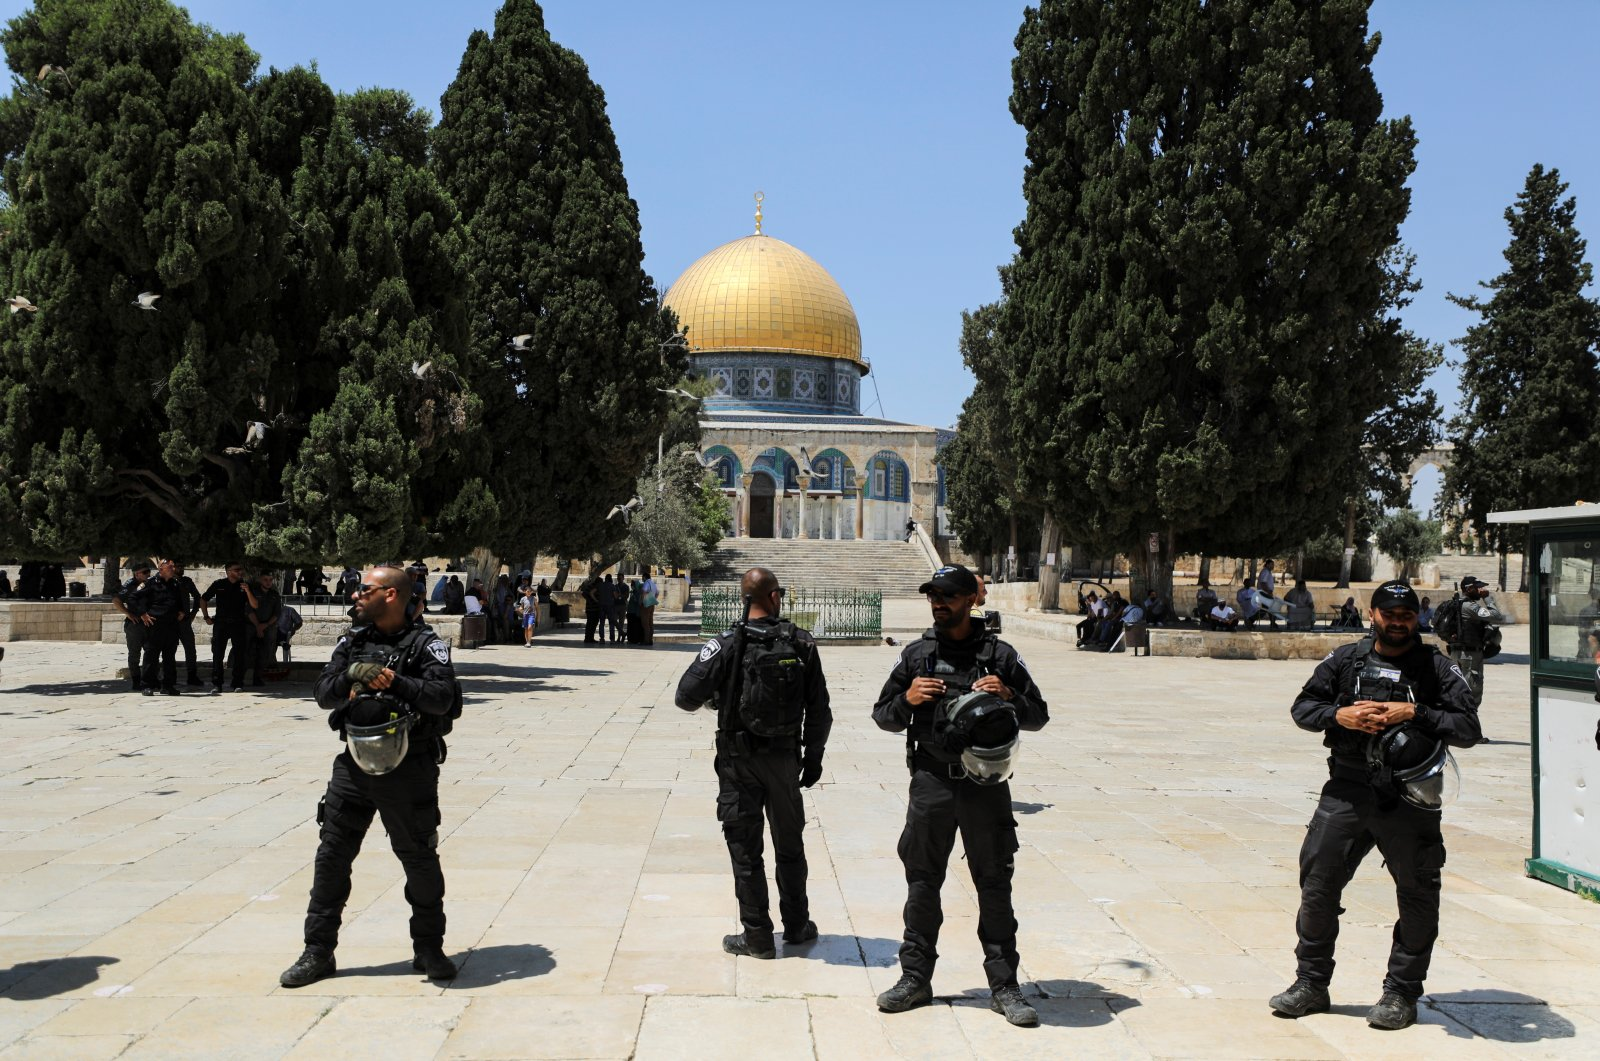 The Dome of the Rock is seen in the background as Israeli security forces stand guard after brief clashes erupted between Israeli police and Palestinians at Al-Aqsa Mosque in East Jerusalem, occupied Palestine, July 18, 2021. (Reuters Photo)